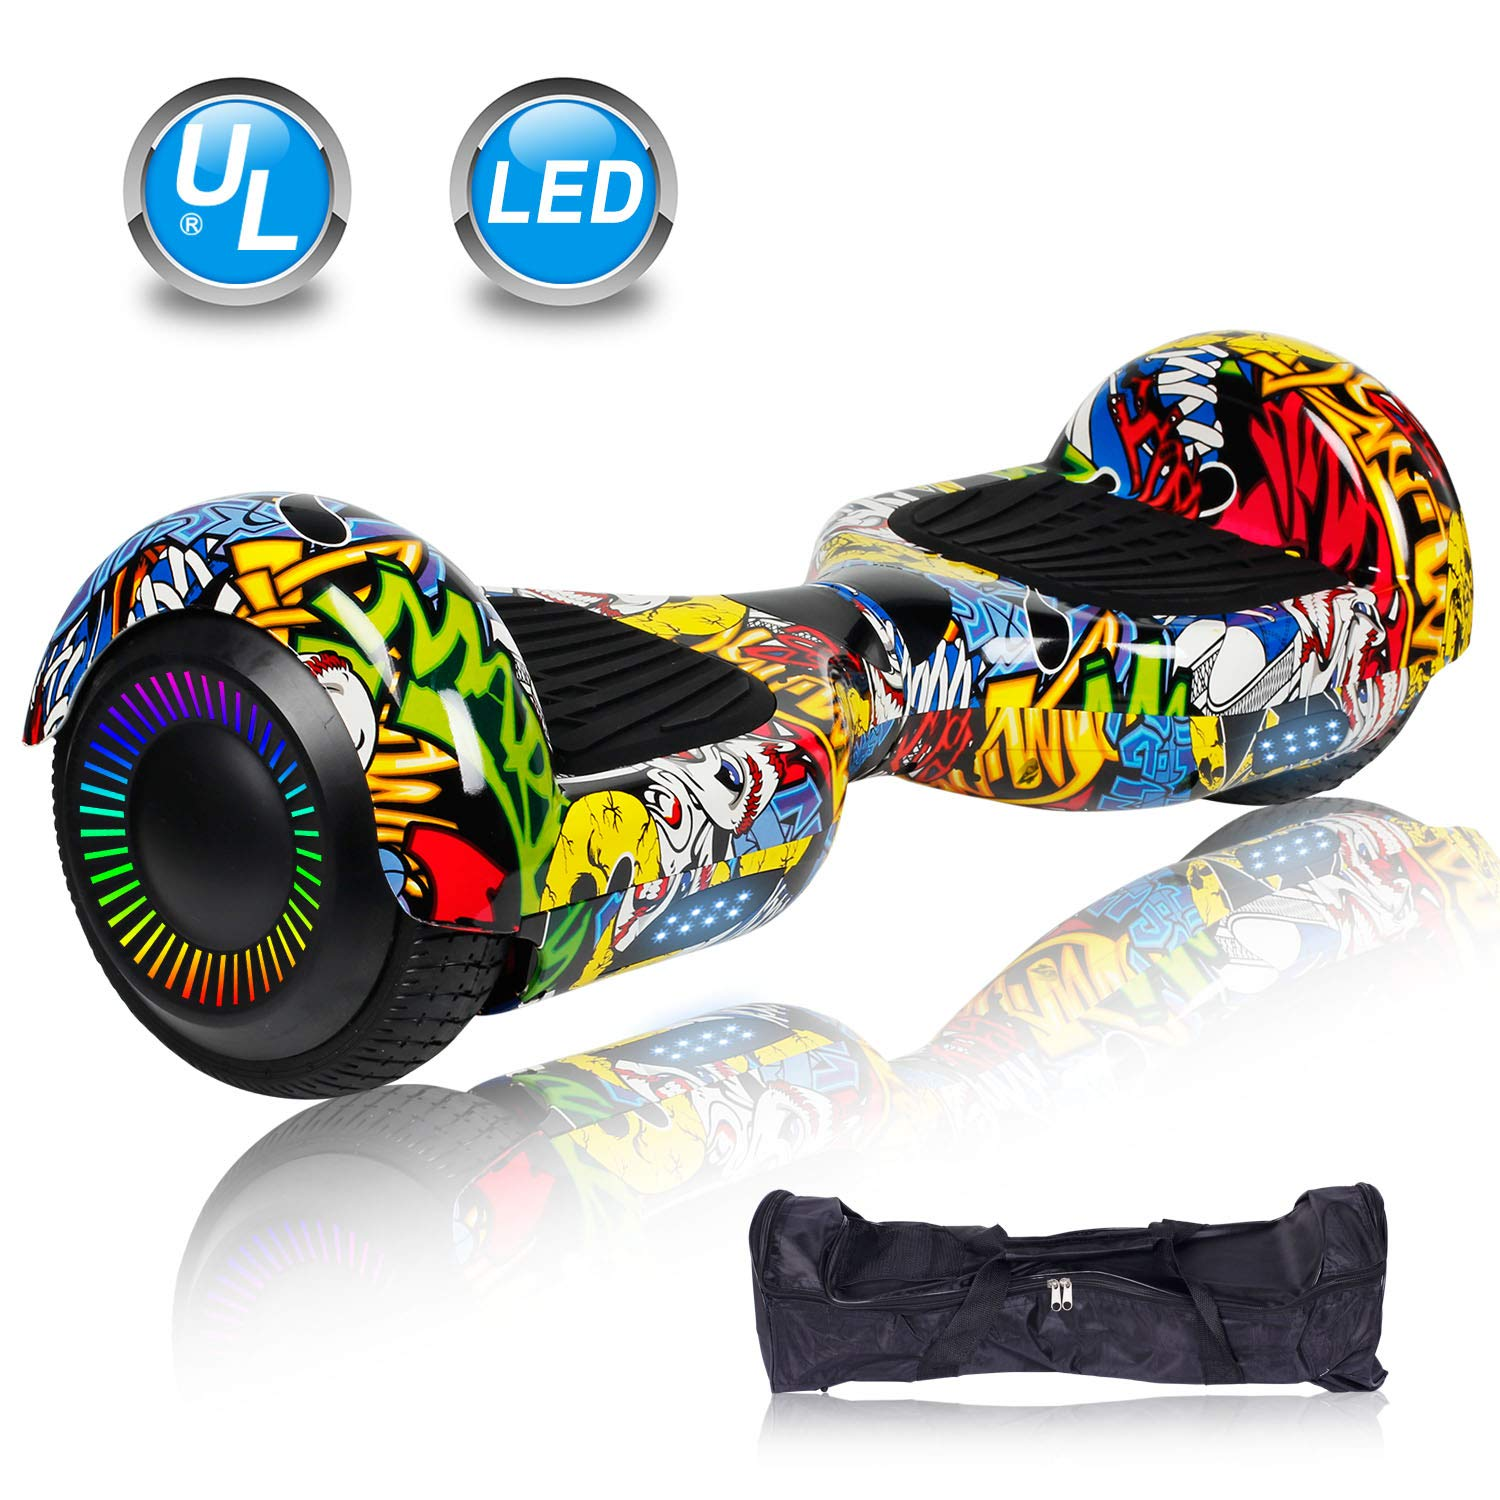 UNI-SUN 6.5'' Hoverboard for Kids, Two Wheel Electric Scooter, Self Balancing Hoverboard with Bluetooth and LED Lights for Adults, UL 2272 Certified Hover Board (Classic X-Graffiti(no Bluetooth))